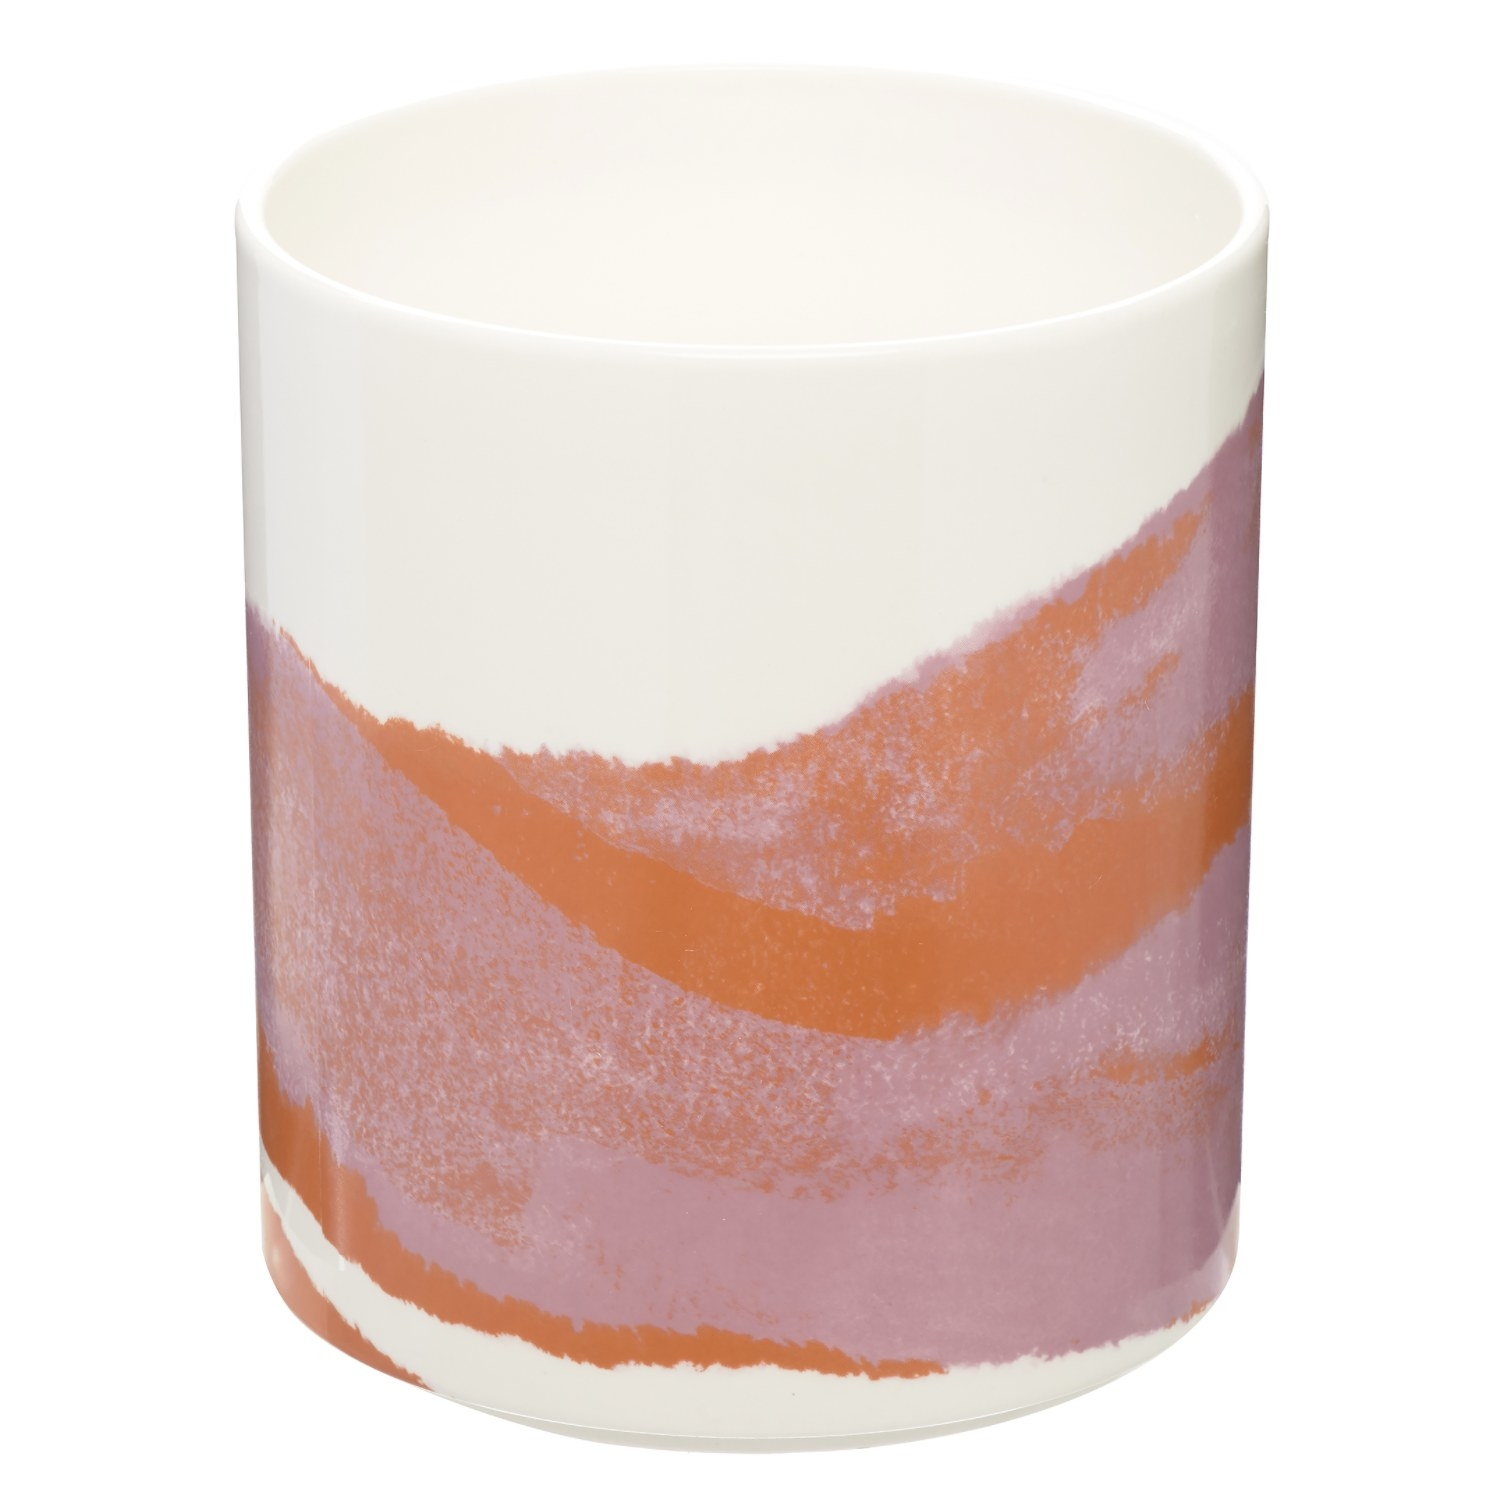 The pink and orange holder